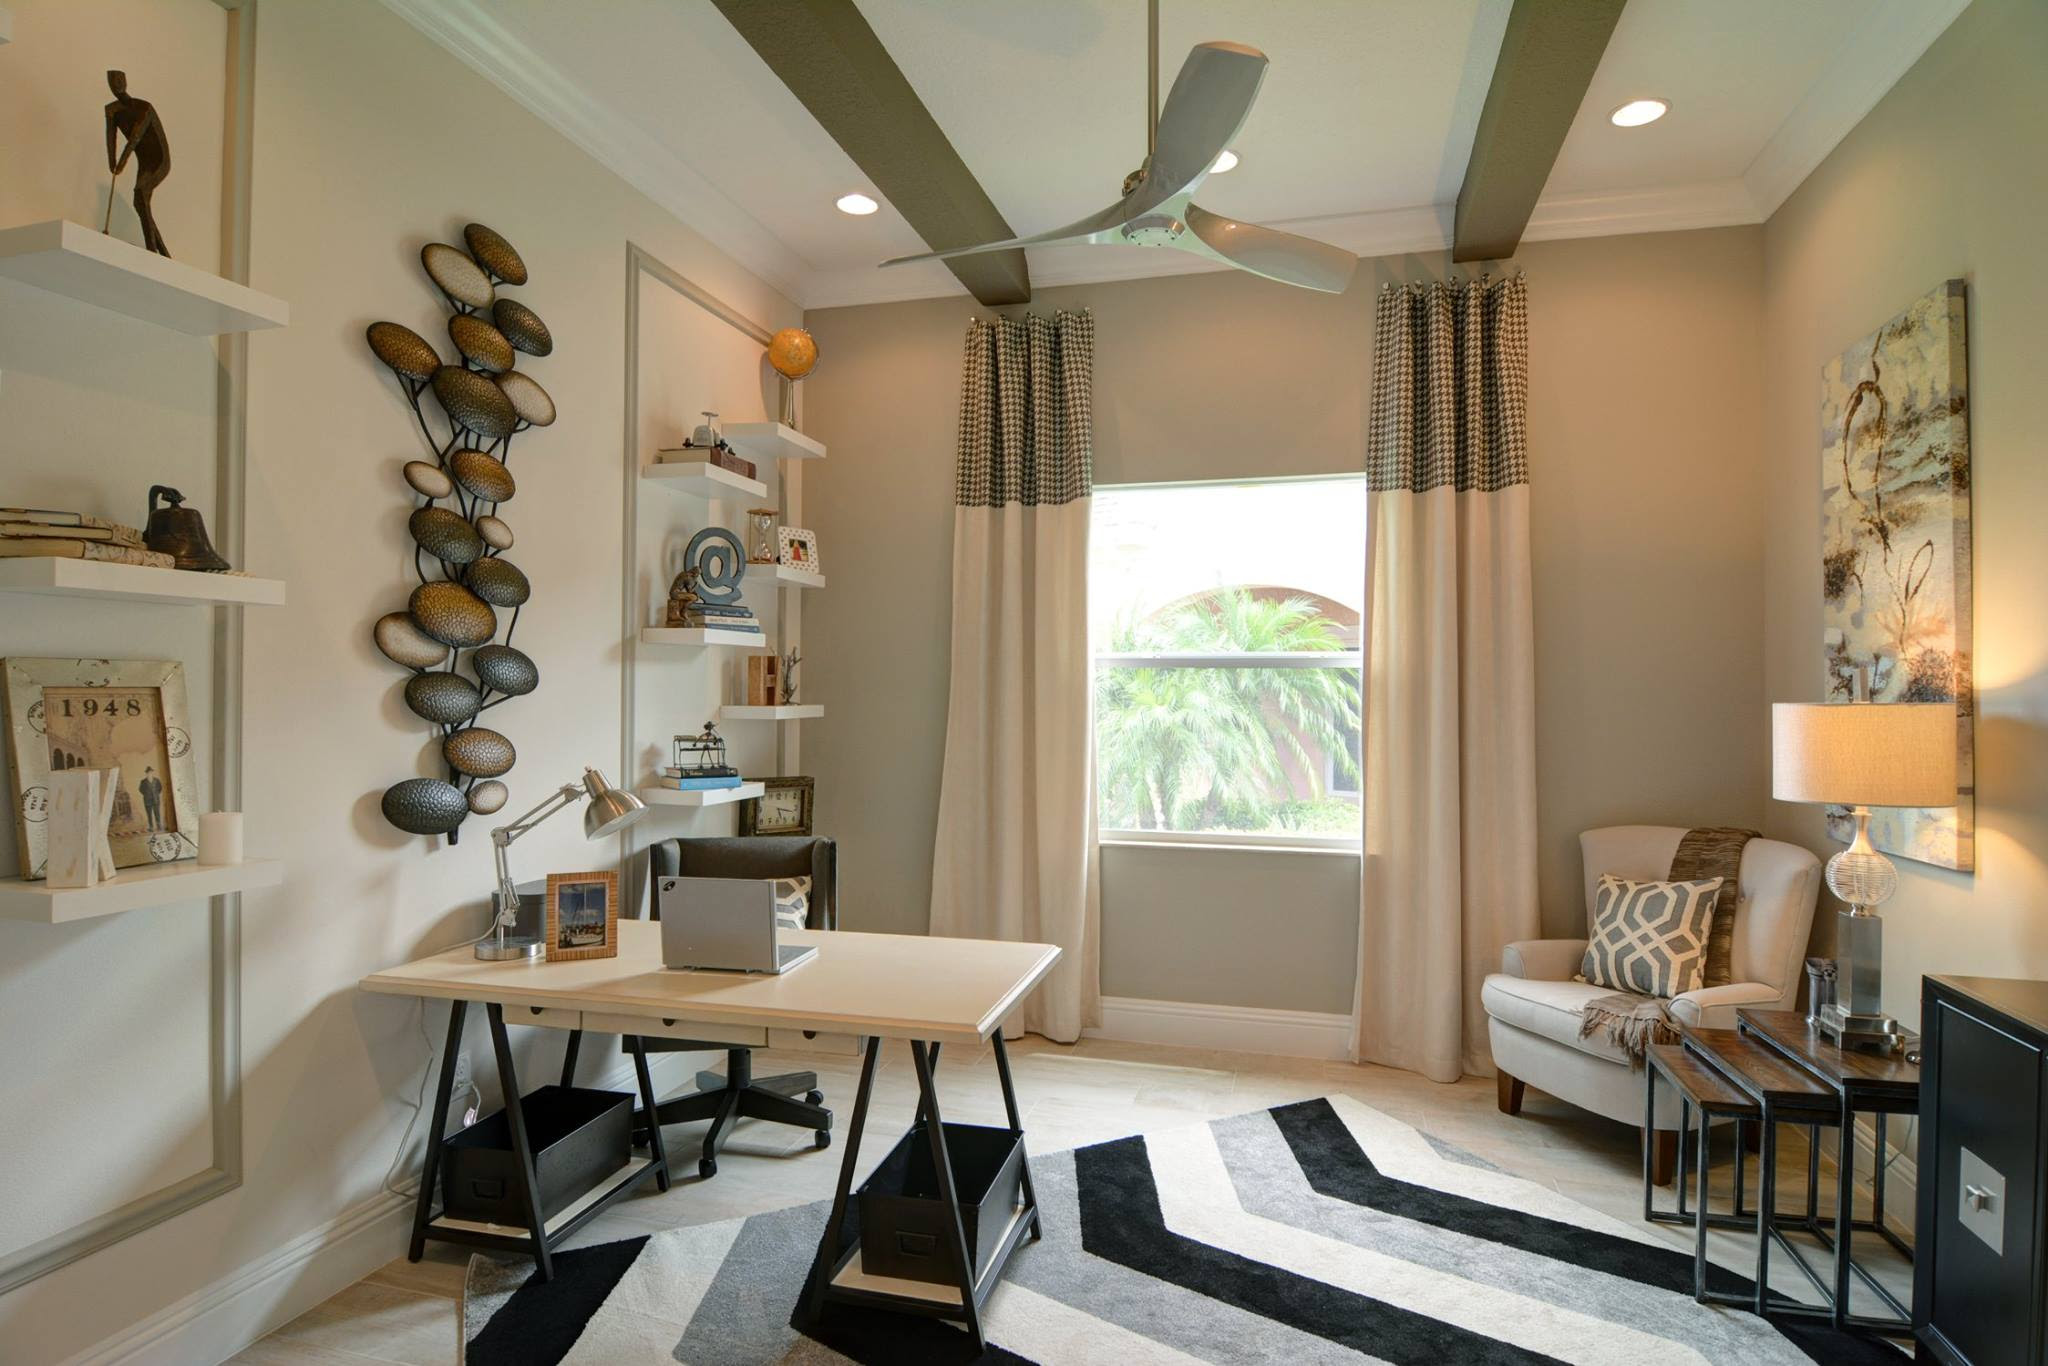 New Home Interior Design Pictures - Award Winning Beauty ...